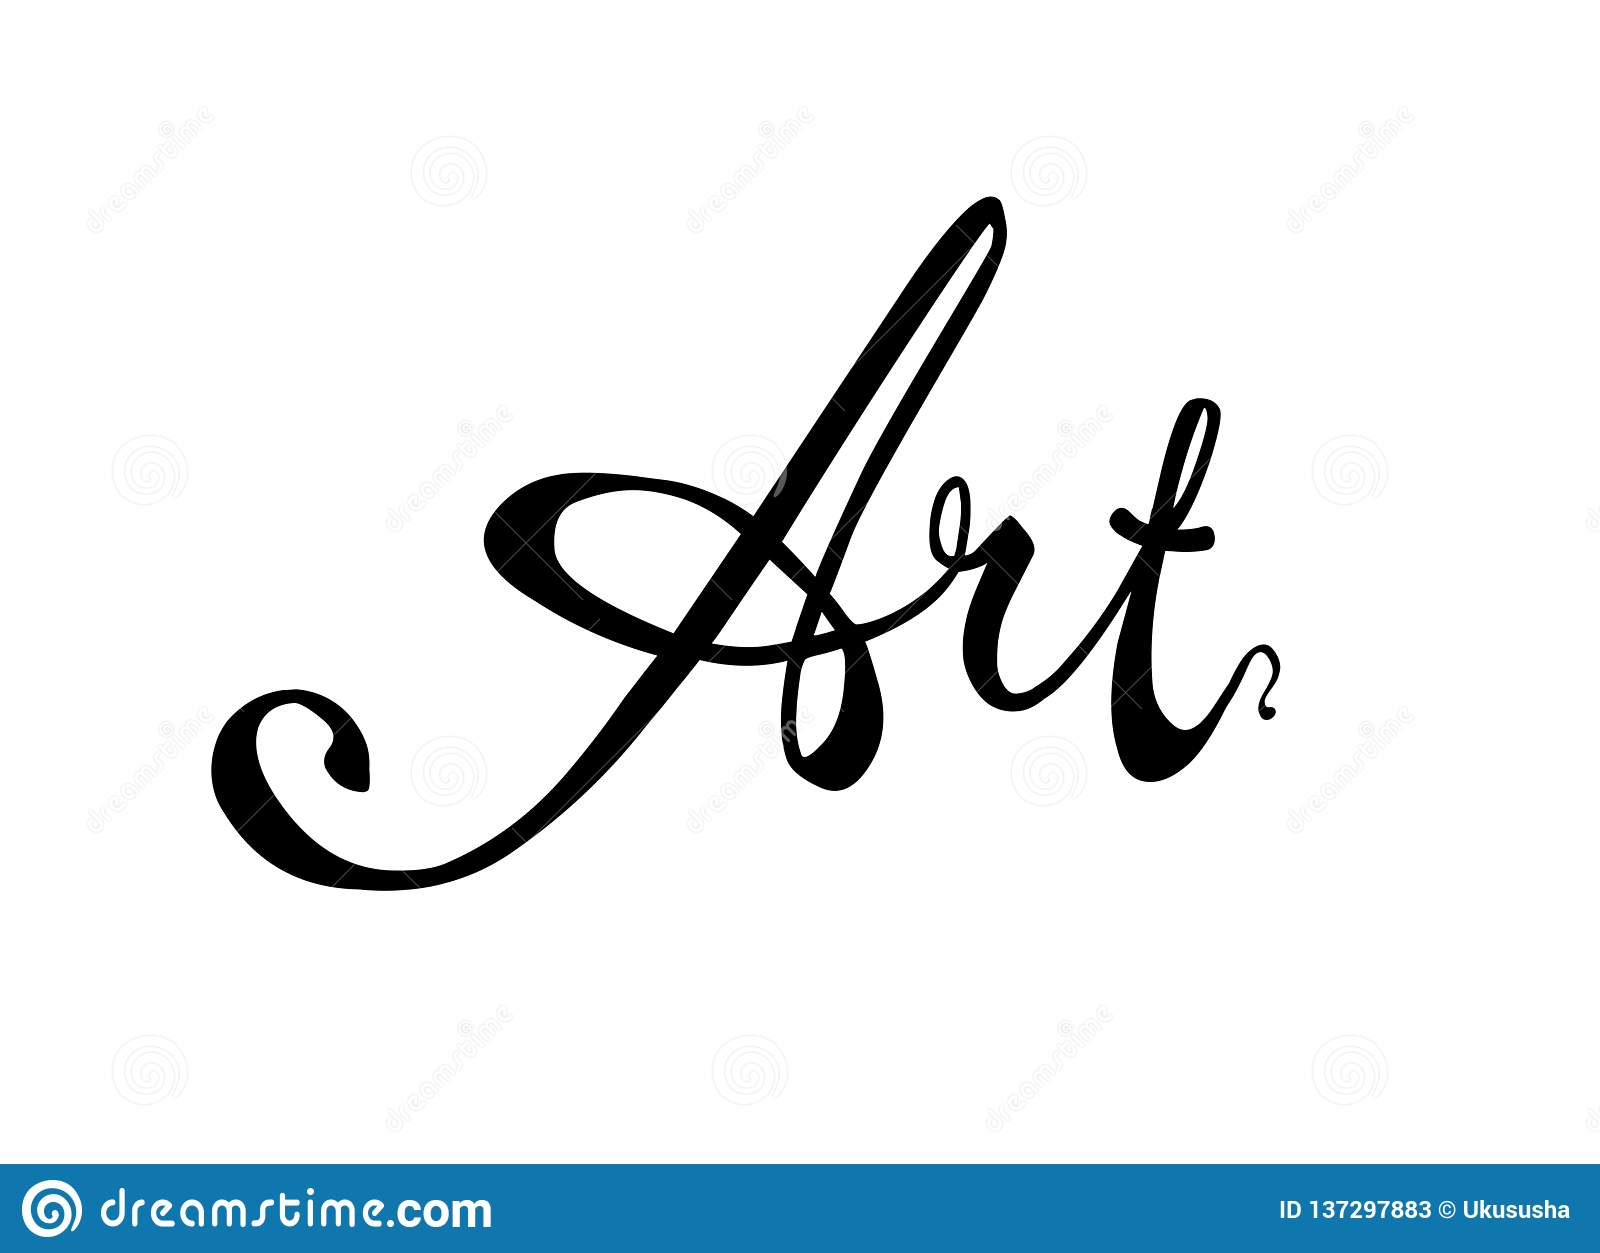 Art calligraphic vector word black on white